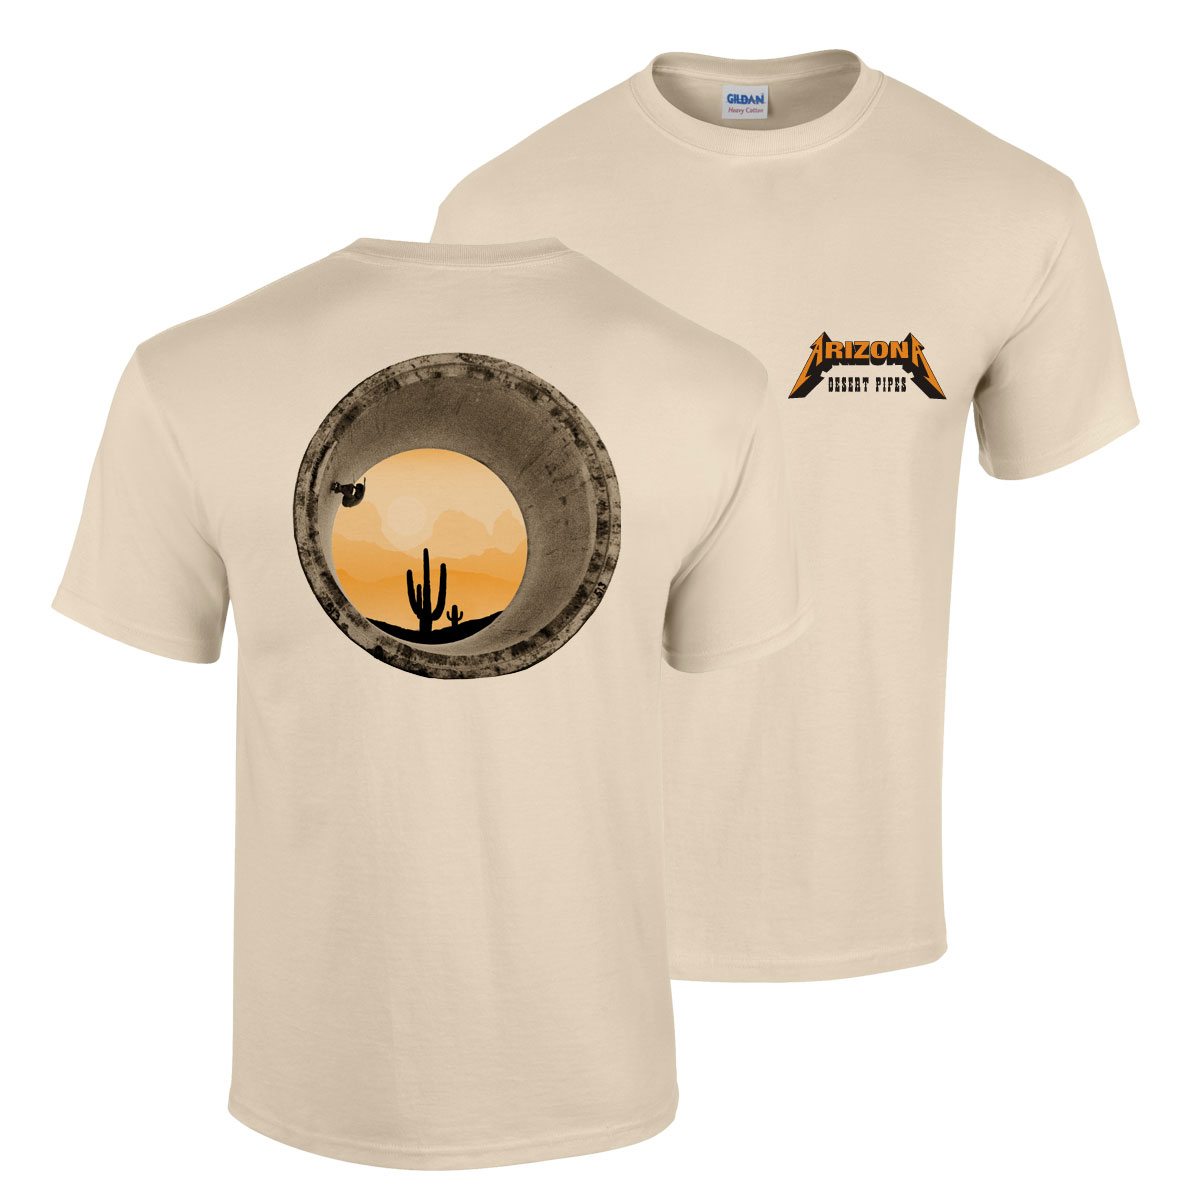 PING! Desert Pipes T-shirt Series No. 1